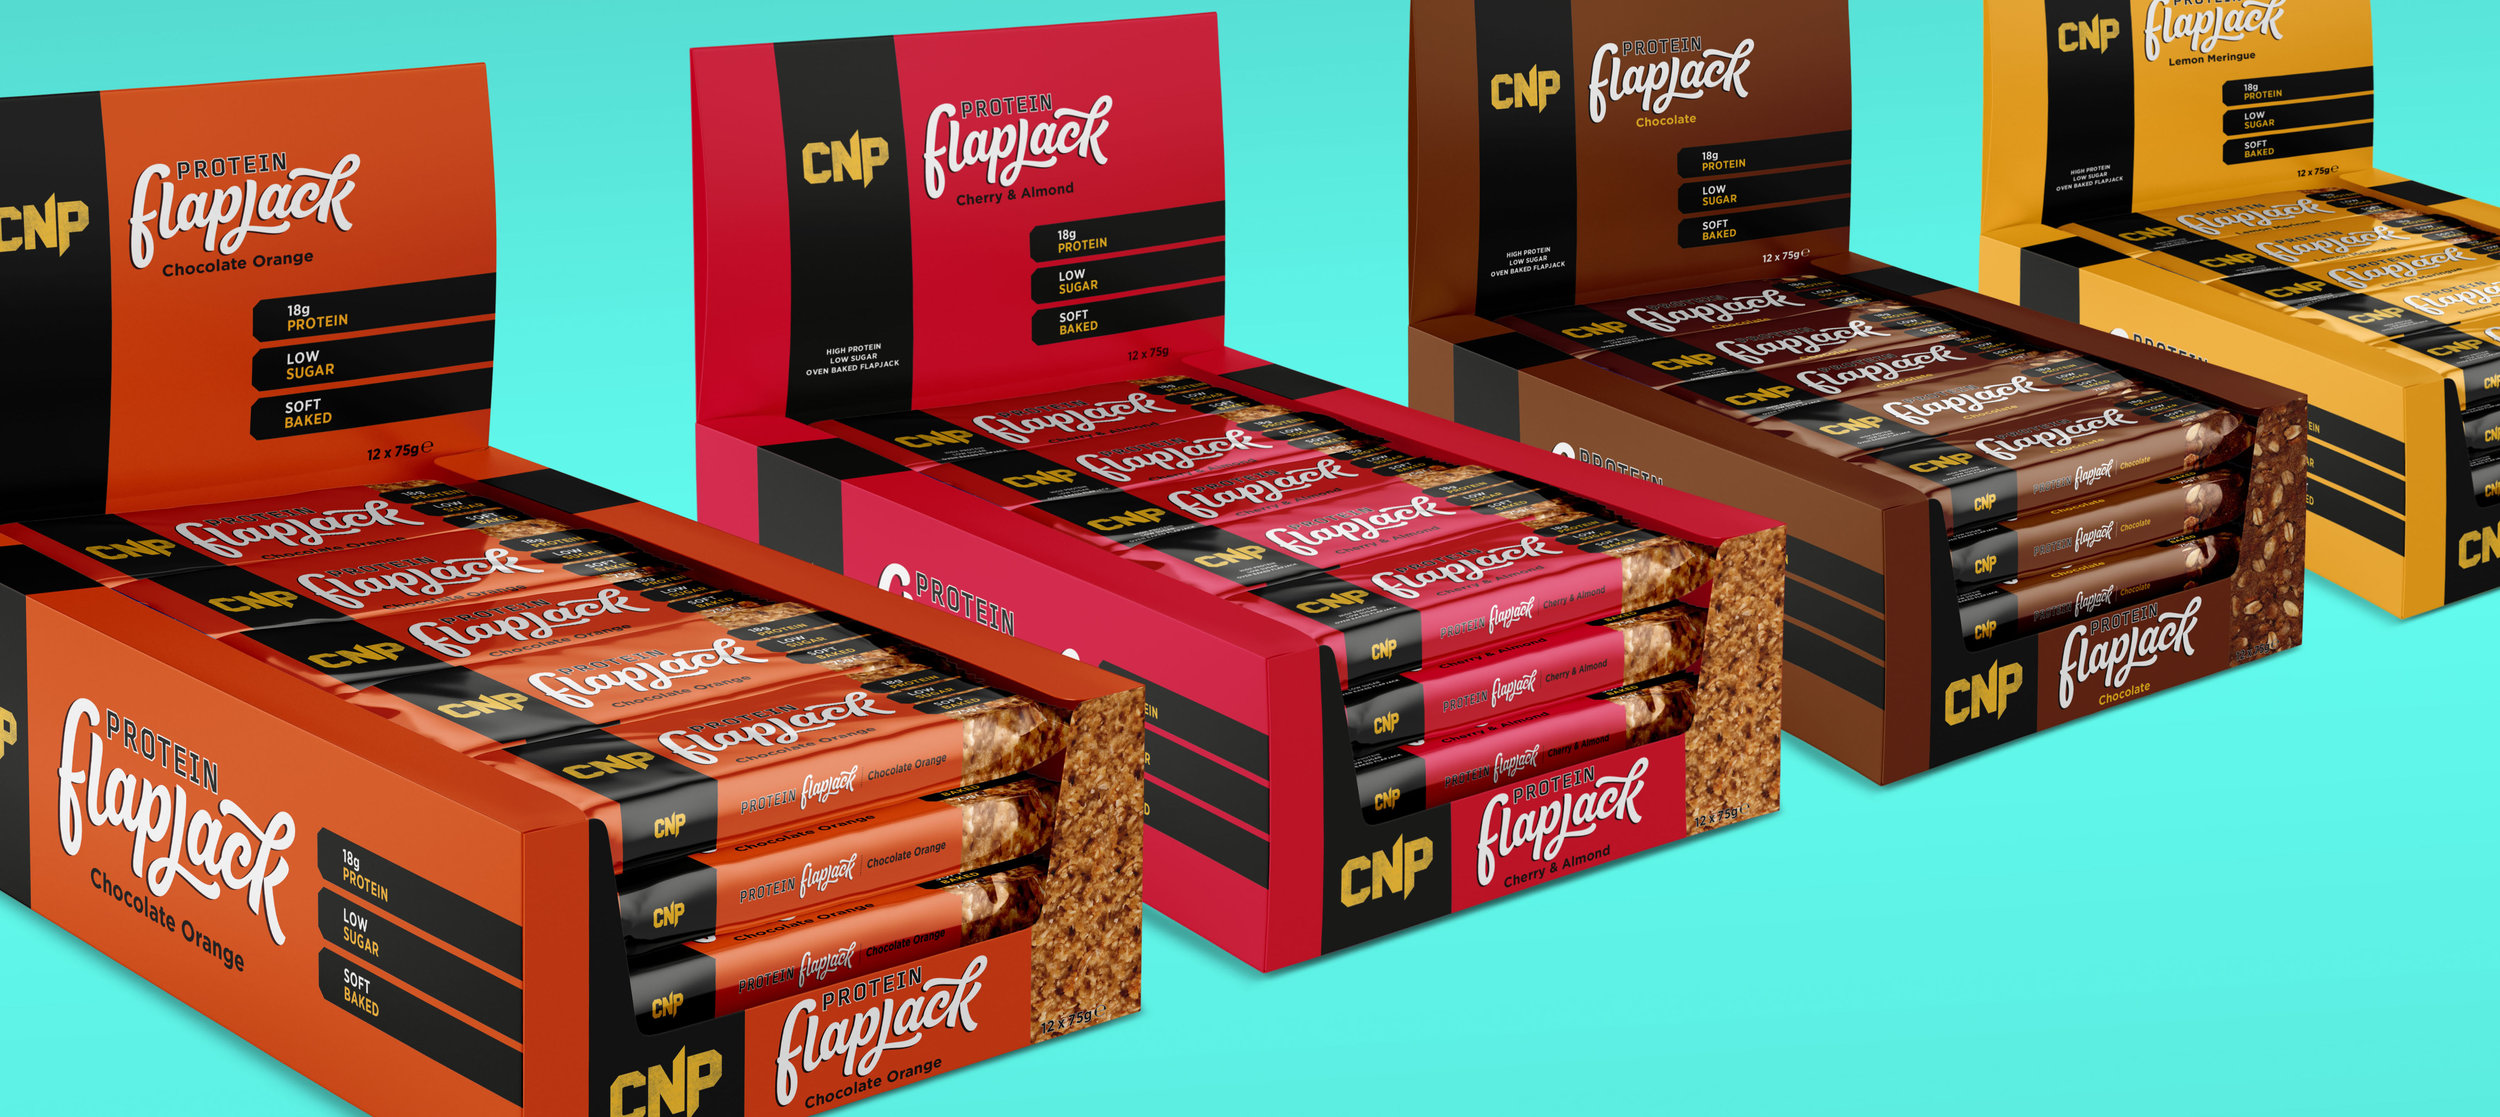 CNP Protein flapjack counter display packaging - 3D mock ups